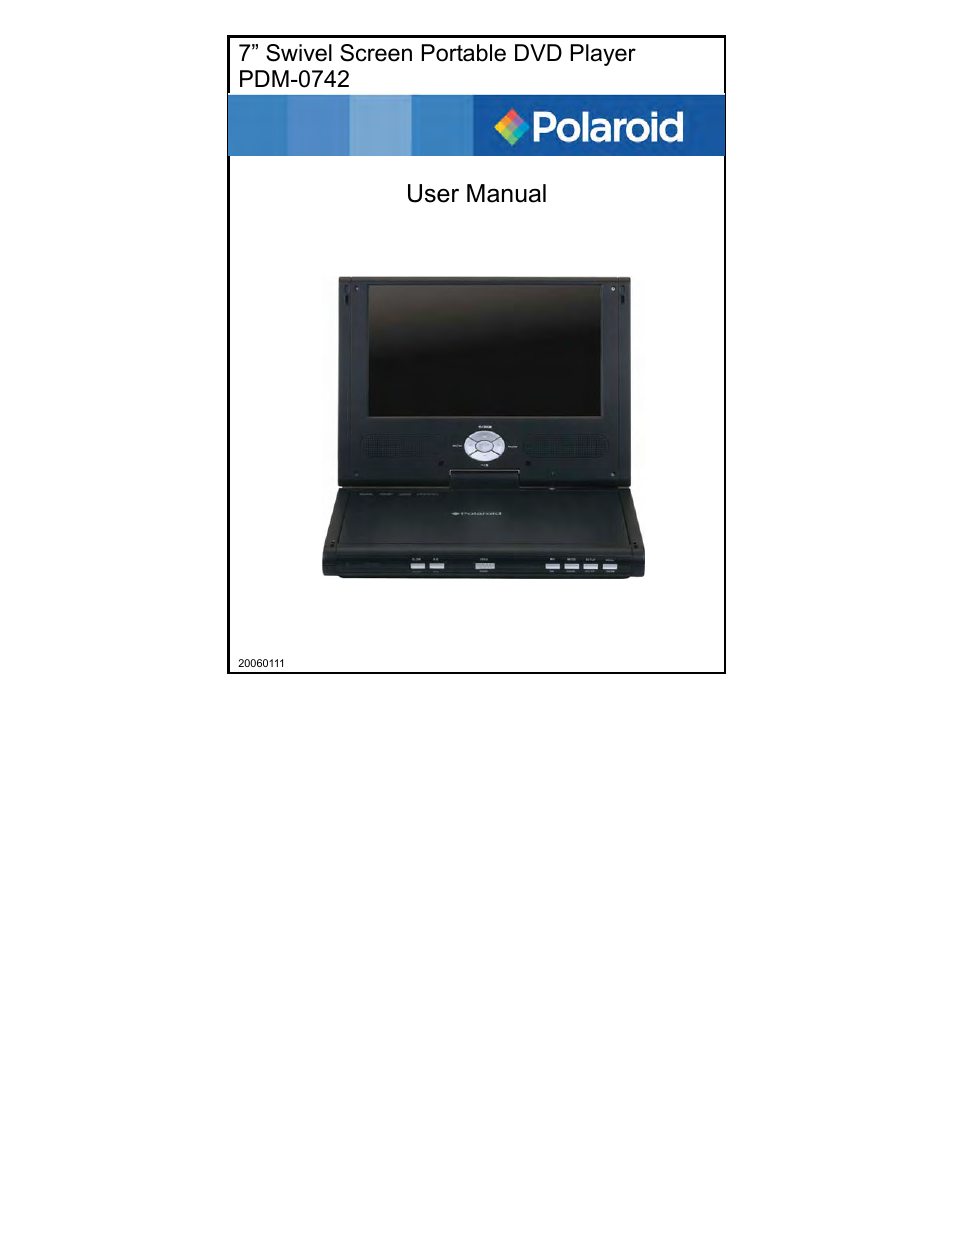 polaroid pdm 0742 user manual 38 pages rh manualsdir com Polaroid Portable DVD Player PDM-0711 Polaroid Portable DVD Player Battery